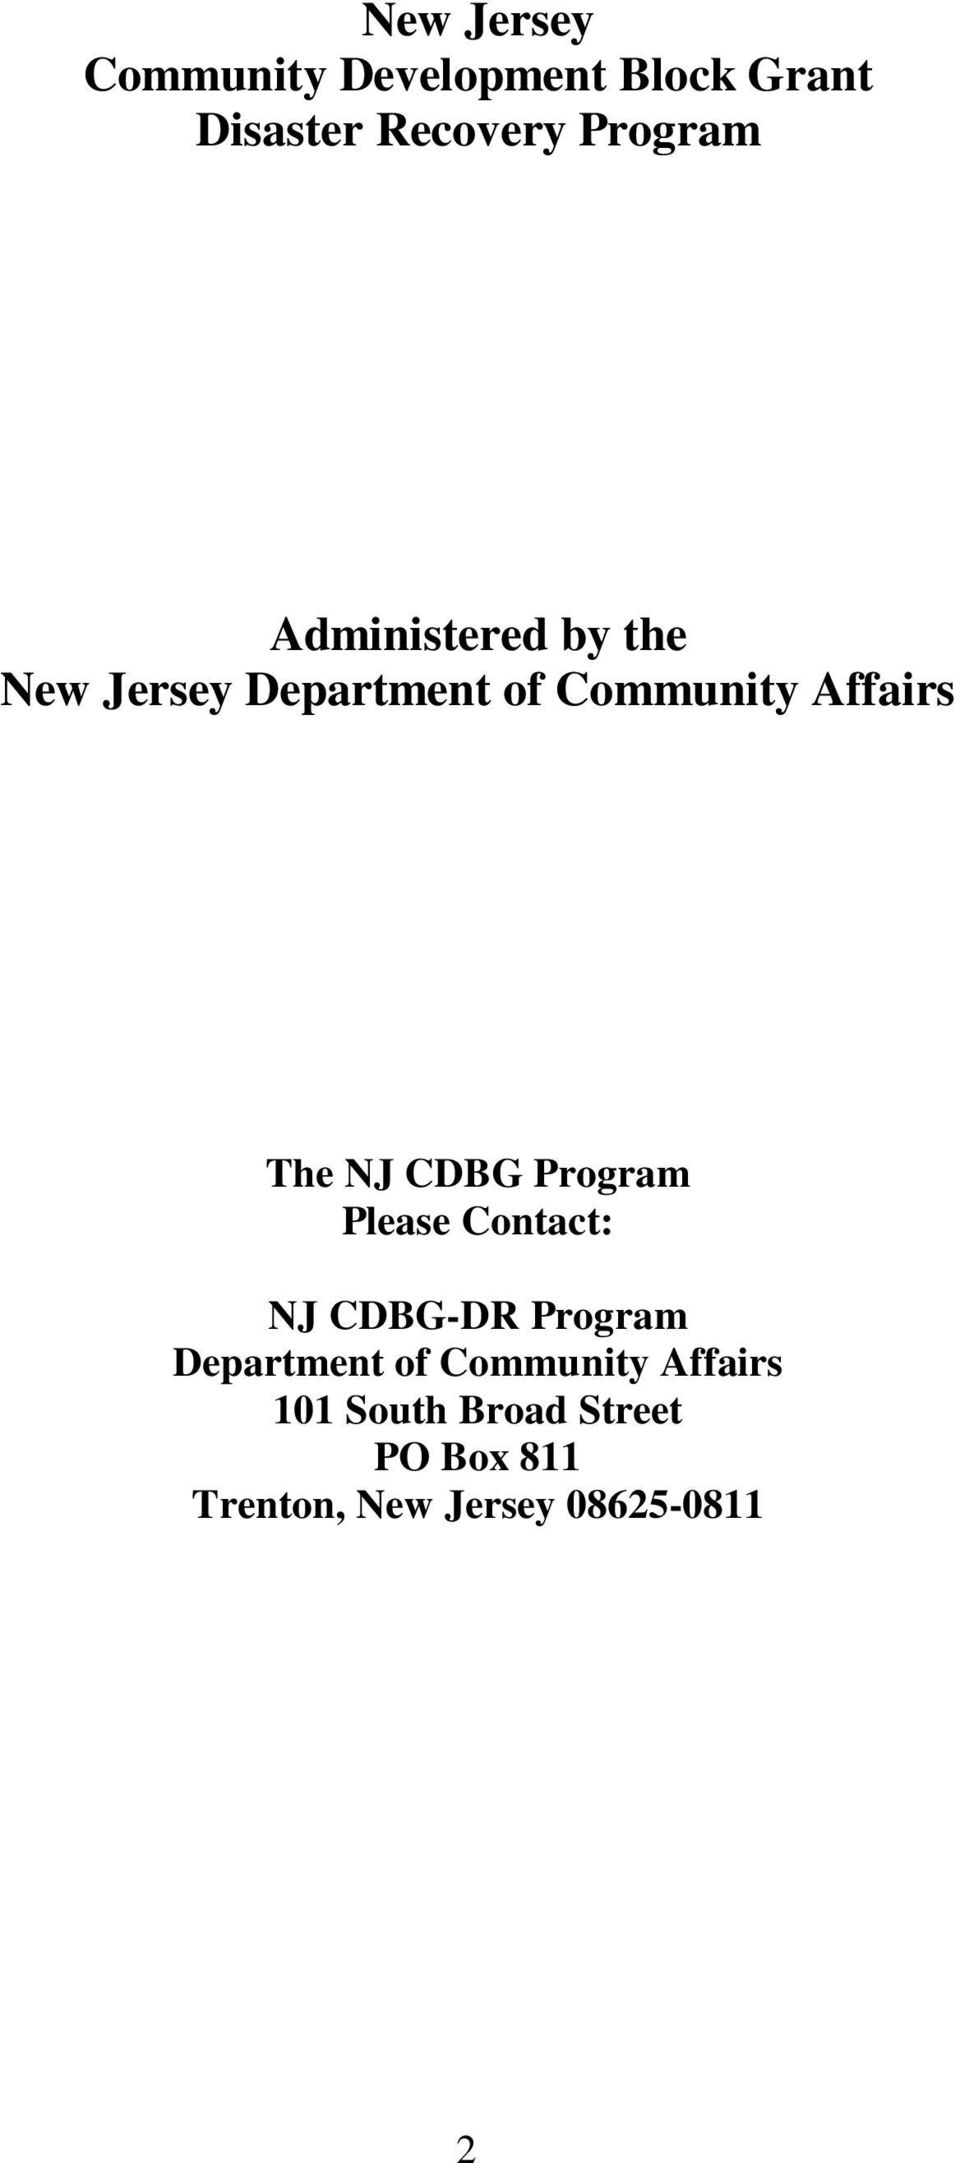 CDBG Program Please Contact: NJ CDBG-DR Program Department of Community